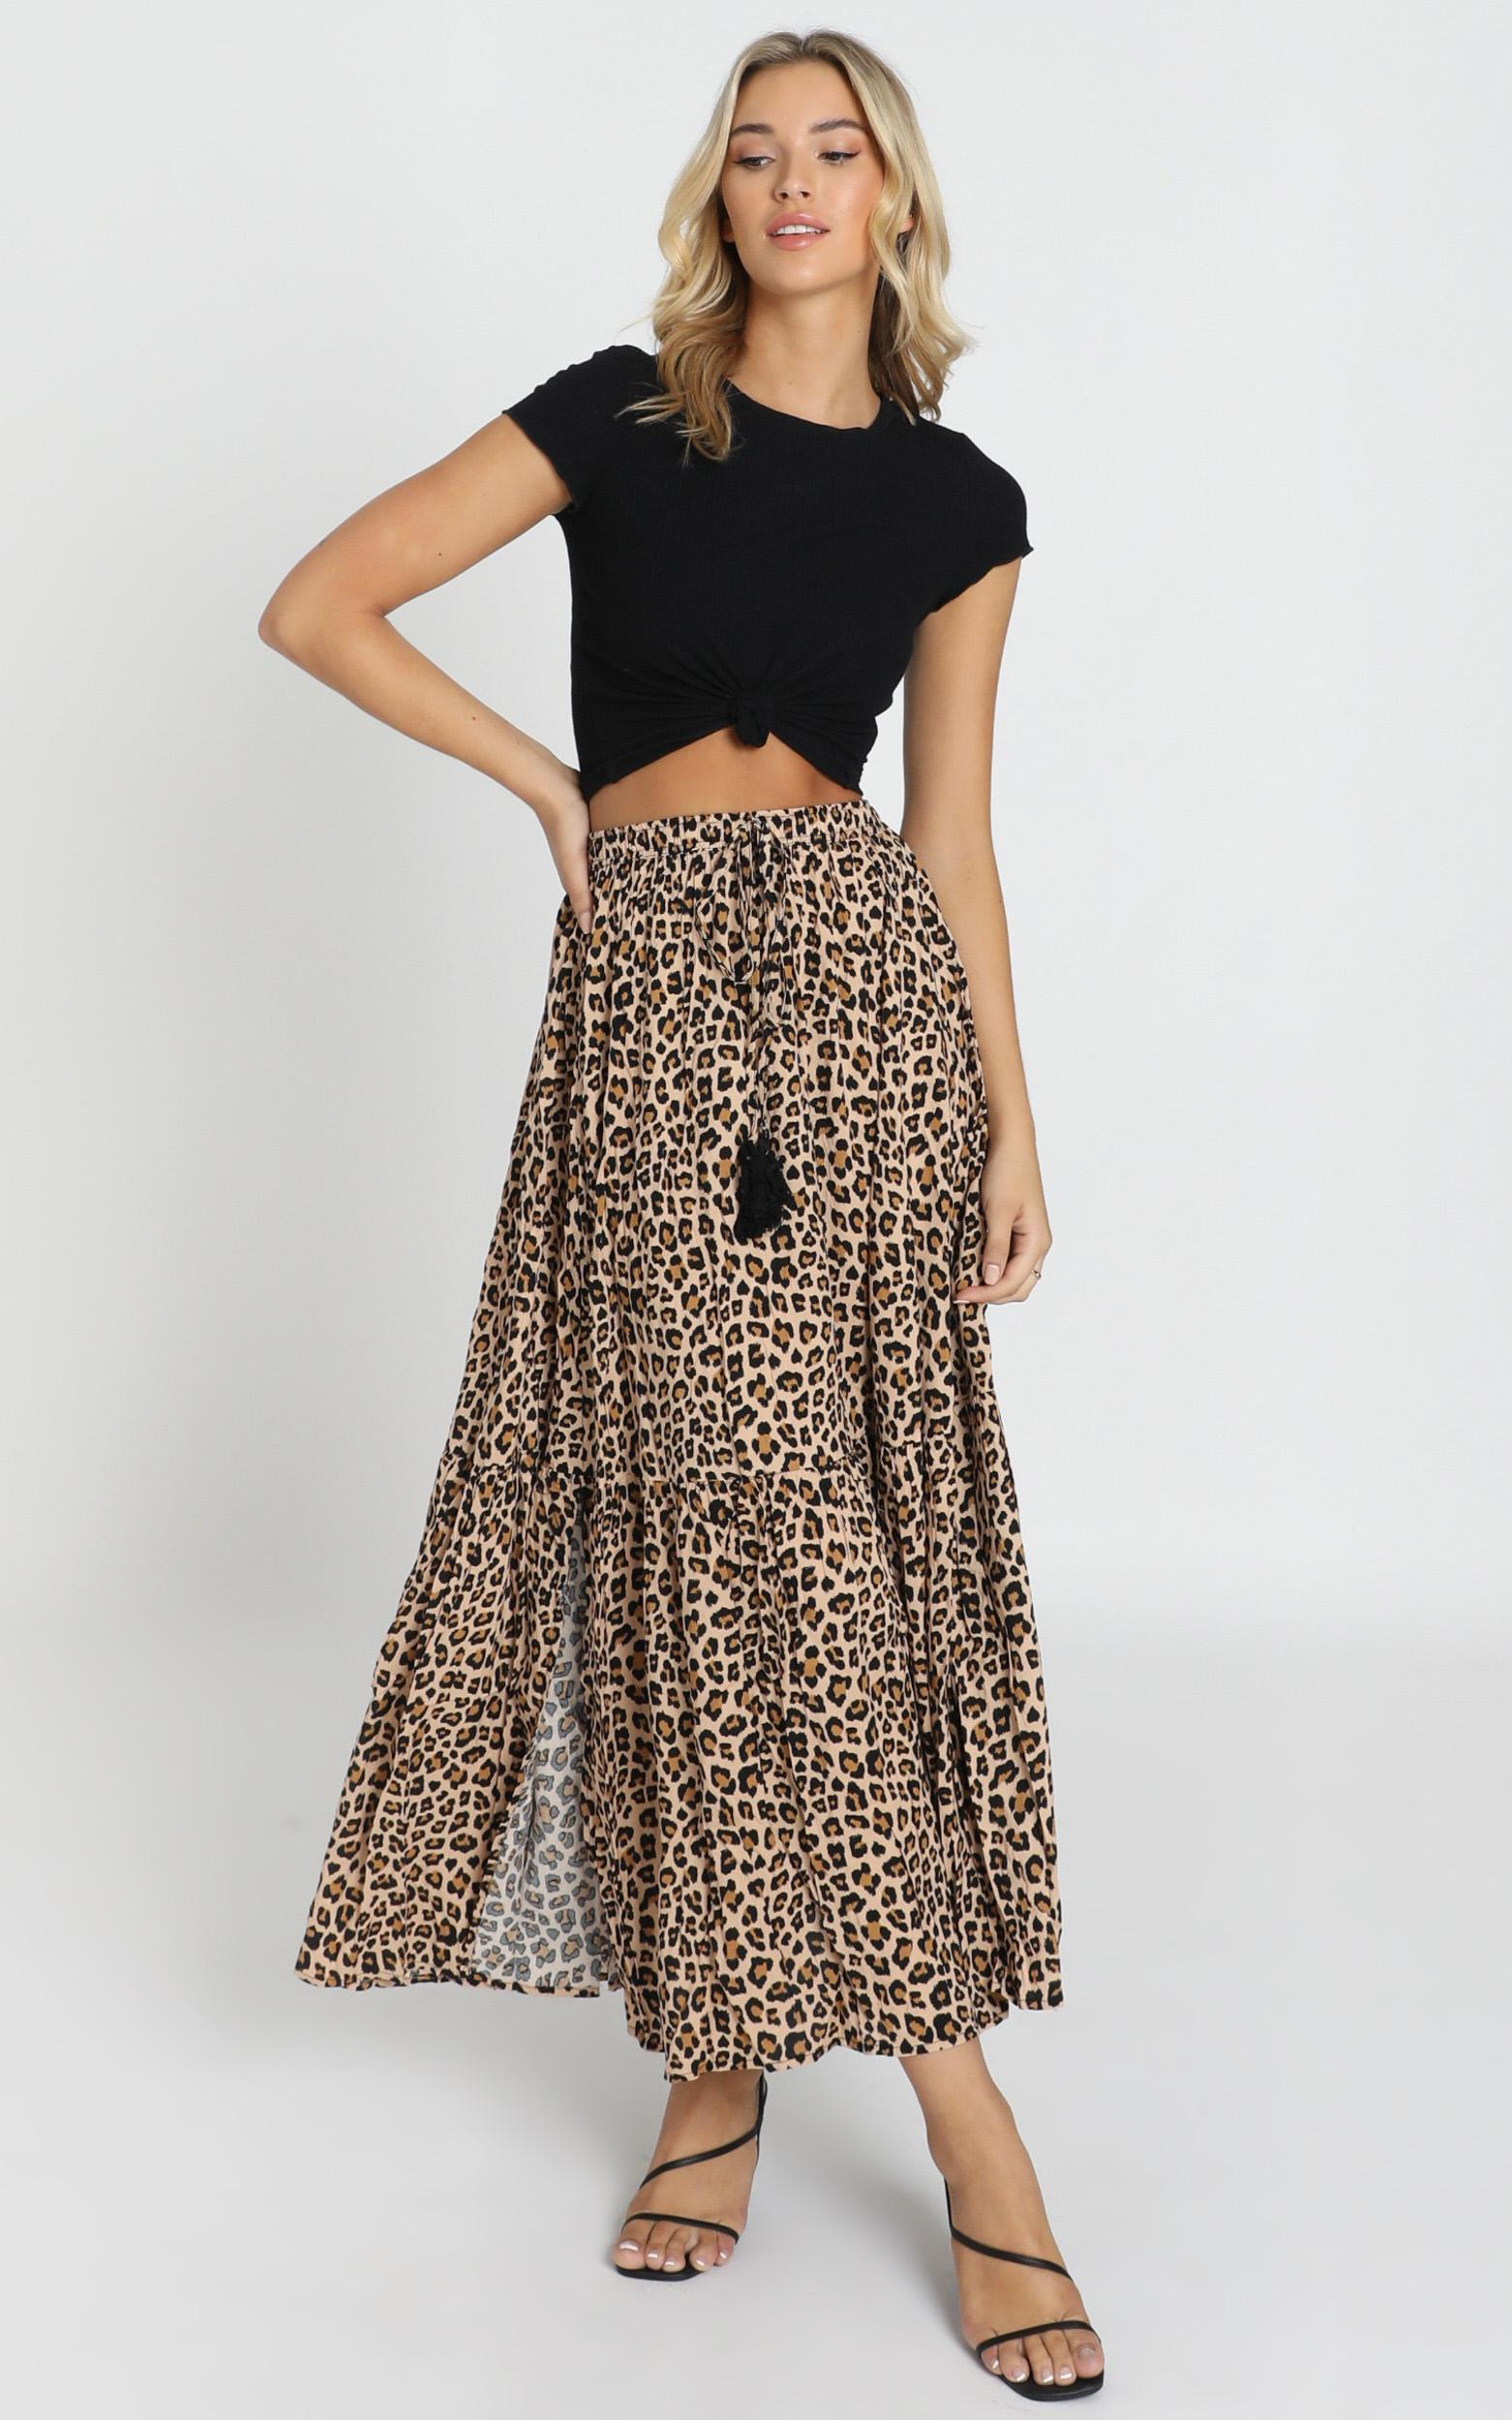 Off To Bali skirt in leopard print - 16 (XXL), Brown, hi-res image number null